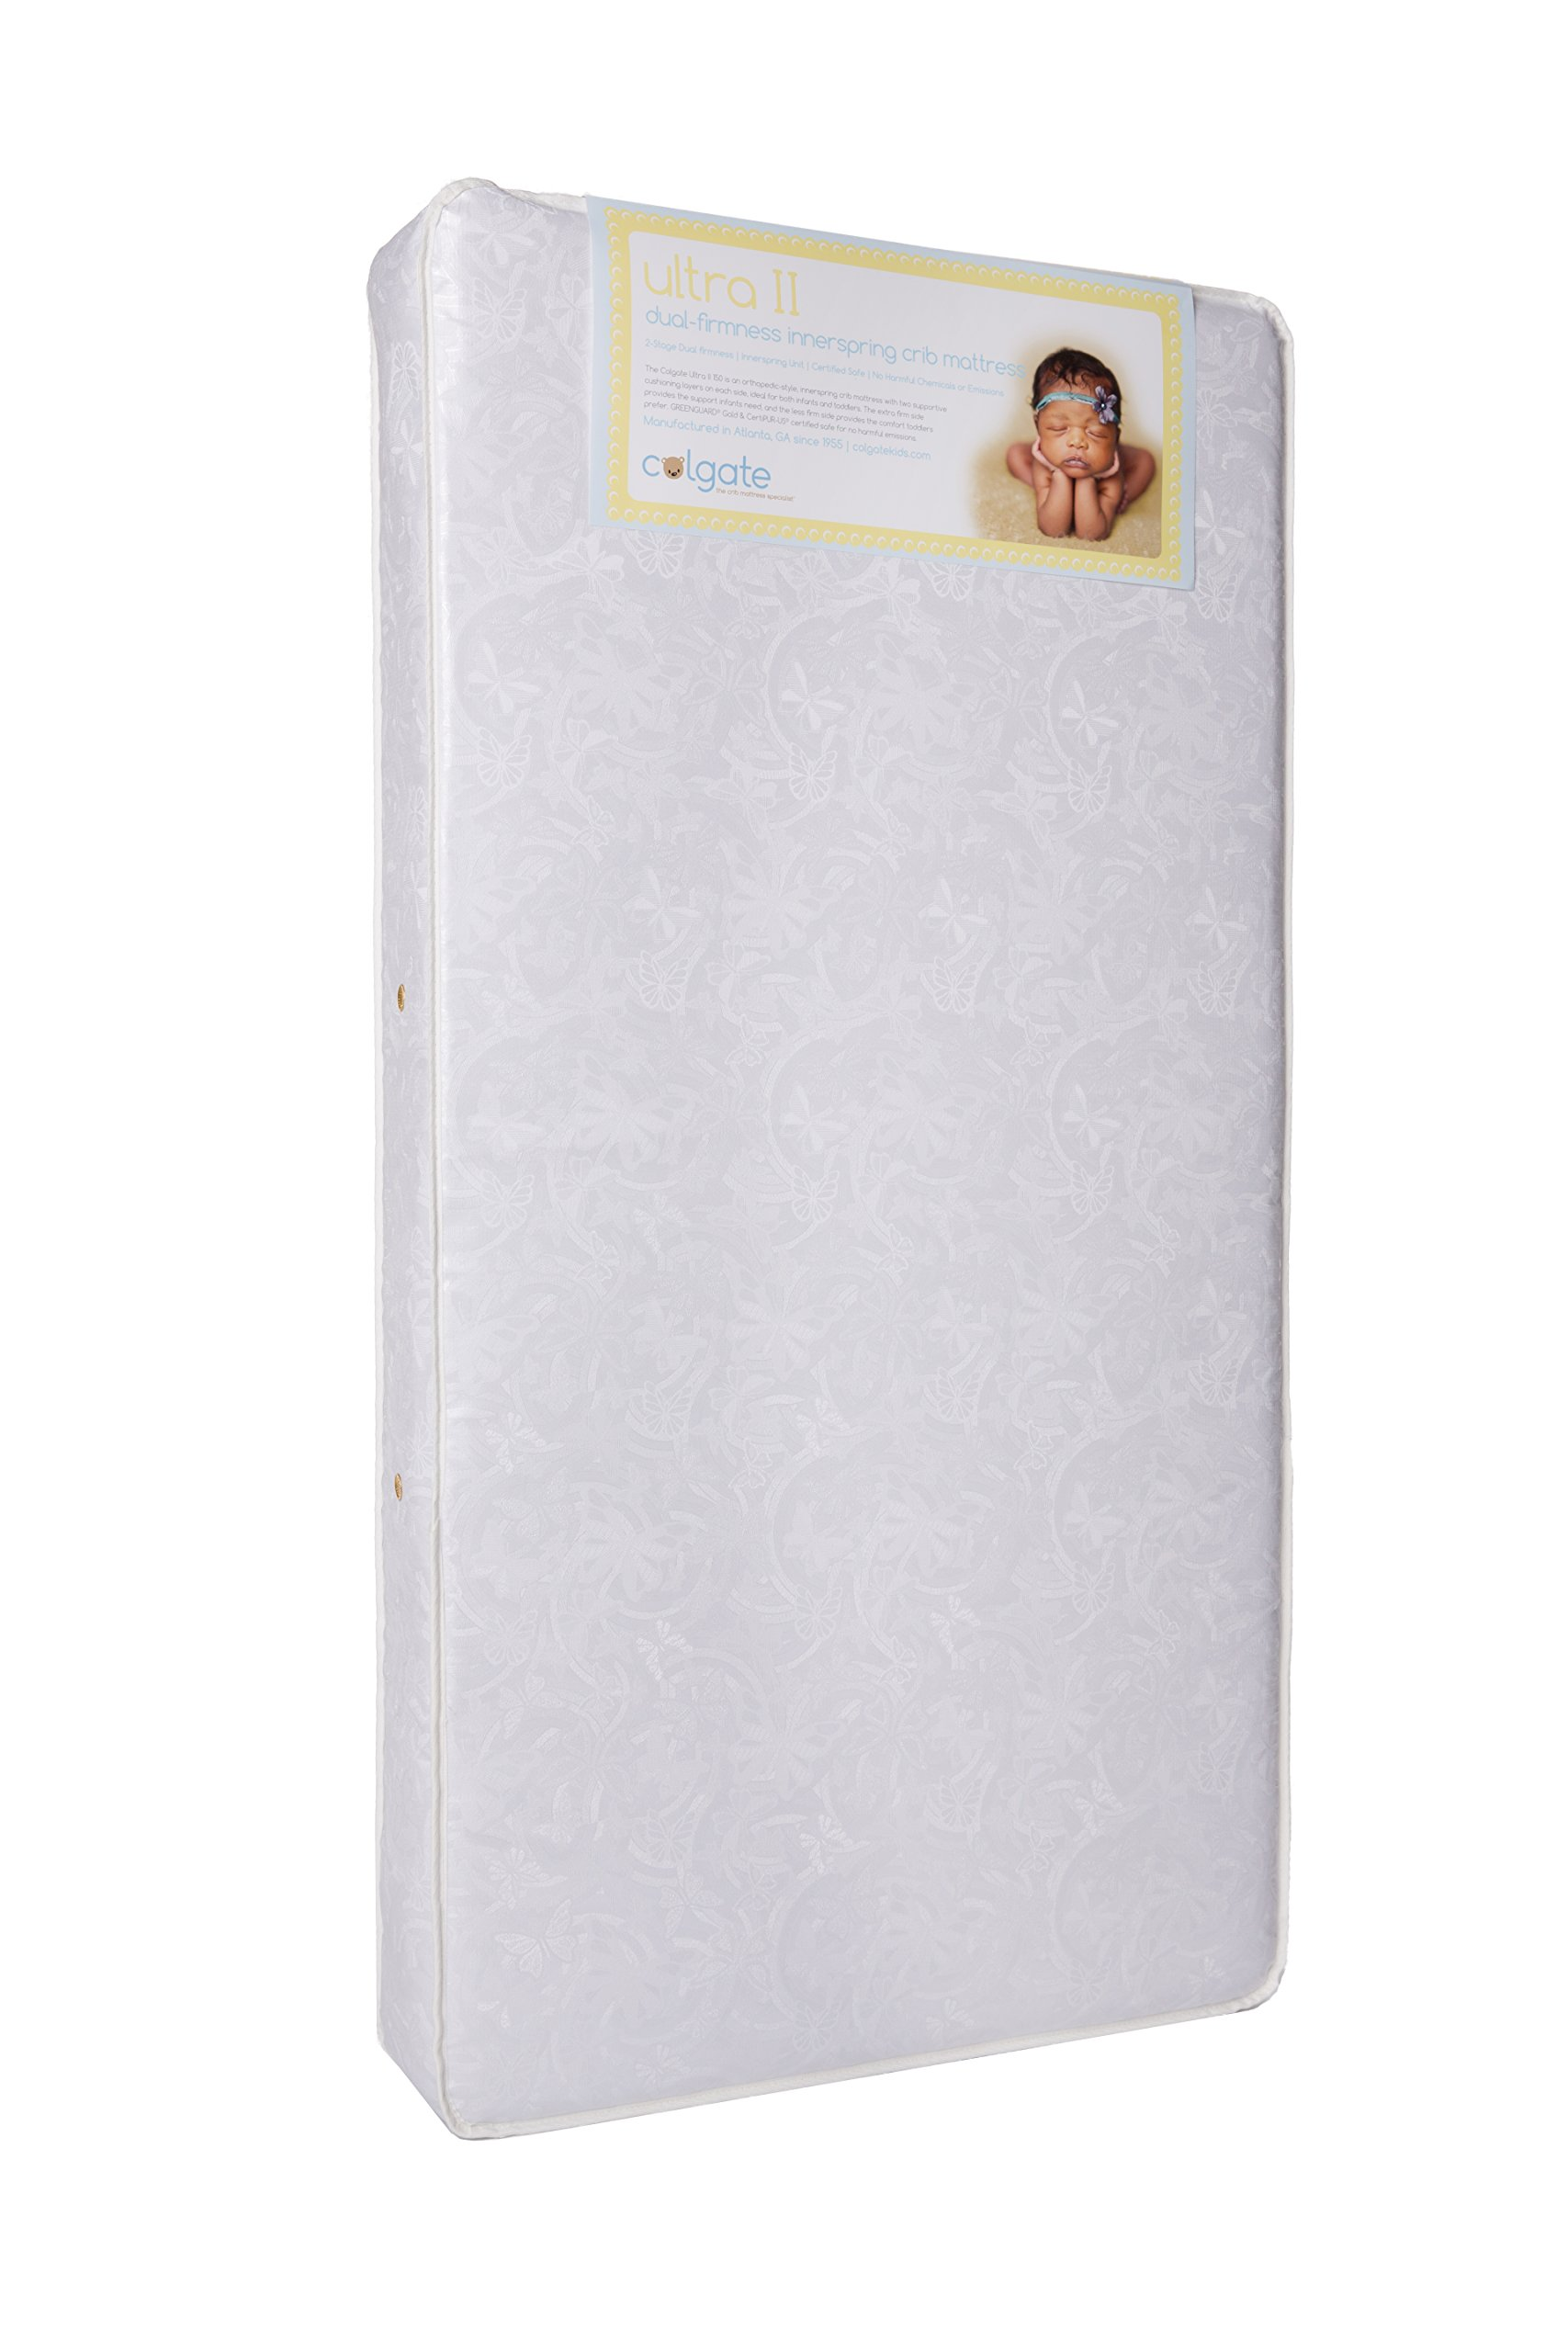 Colgate Ultra II Crib and Toddler Innerspring Mattress   51.6''L x 27.2''W x 6''H   Orthopedic   Triple-Layered, Tear-Resistant Cover  Rectangle with Rounded Corners Crib Mattress   Made in the USA